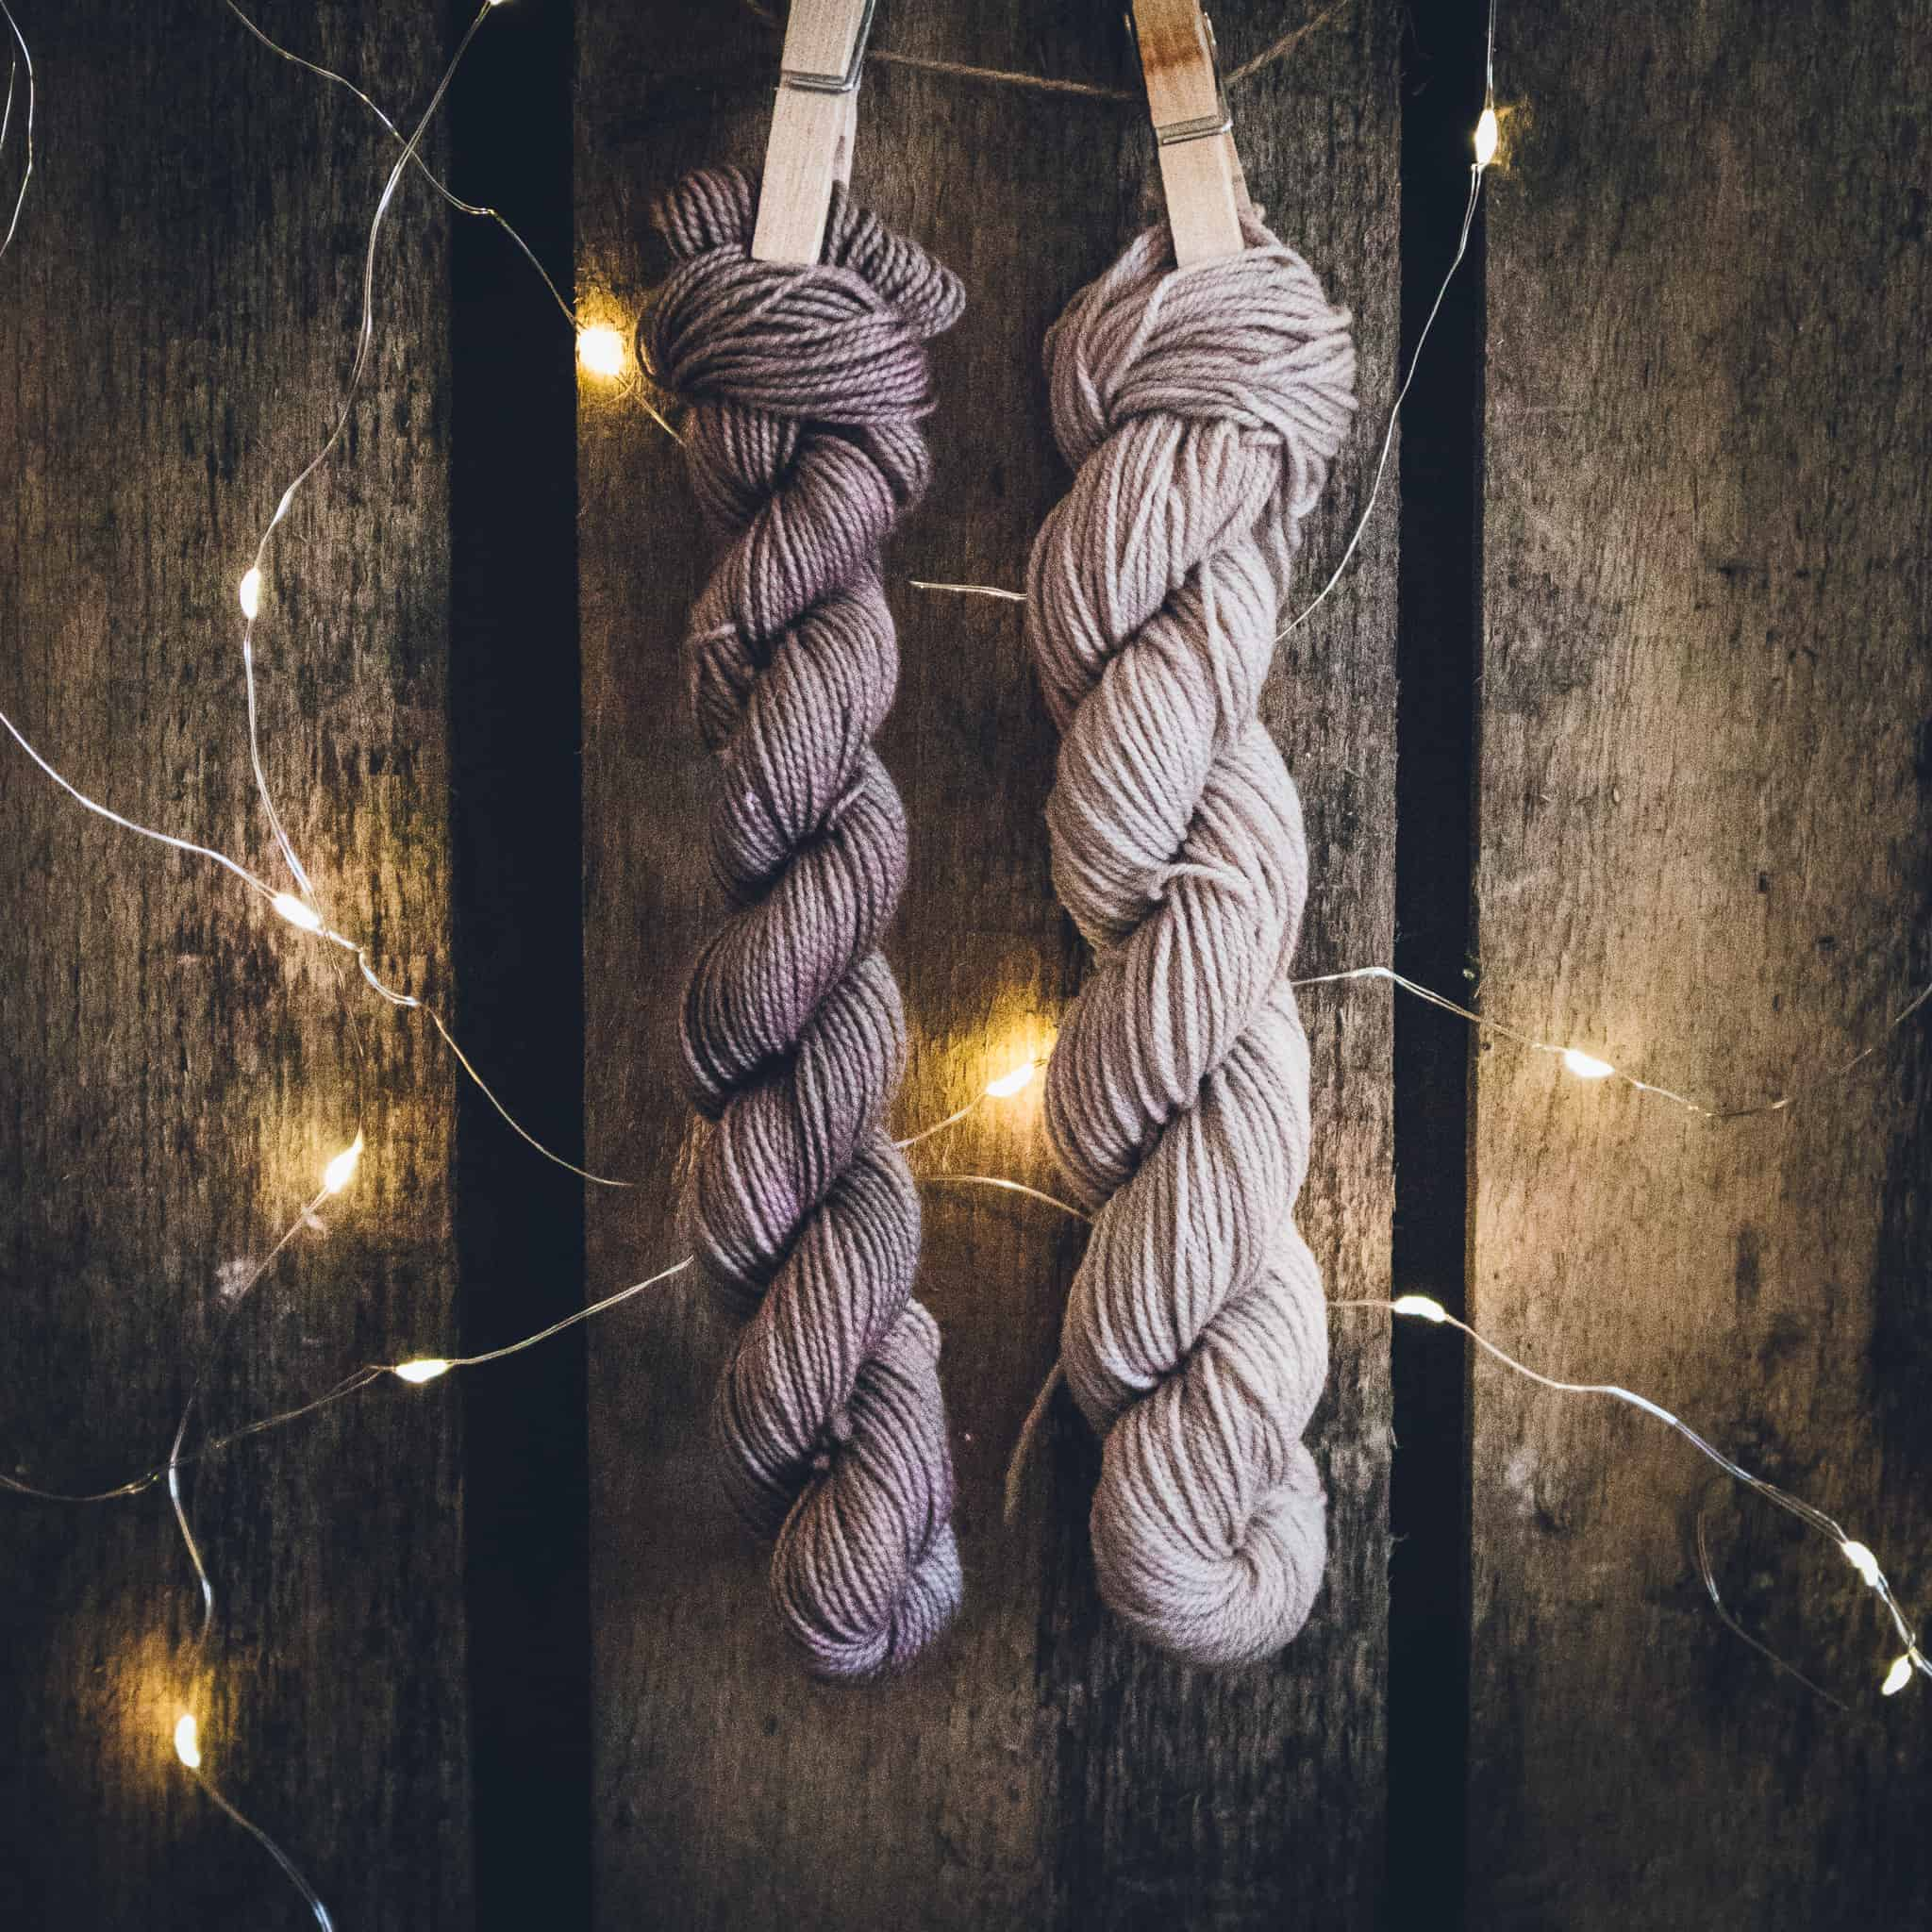 Skeins of gray yarn hanging on wooden clothespins.